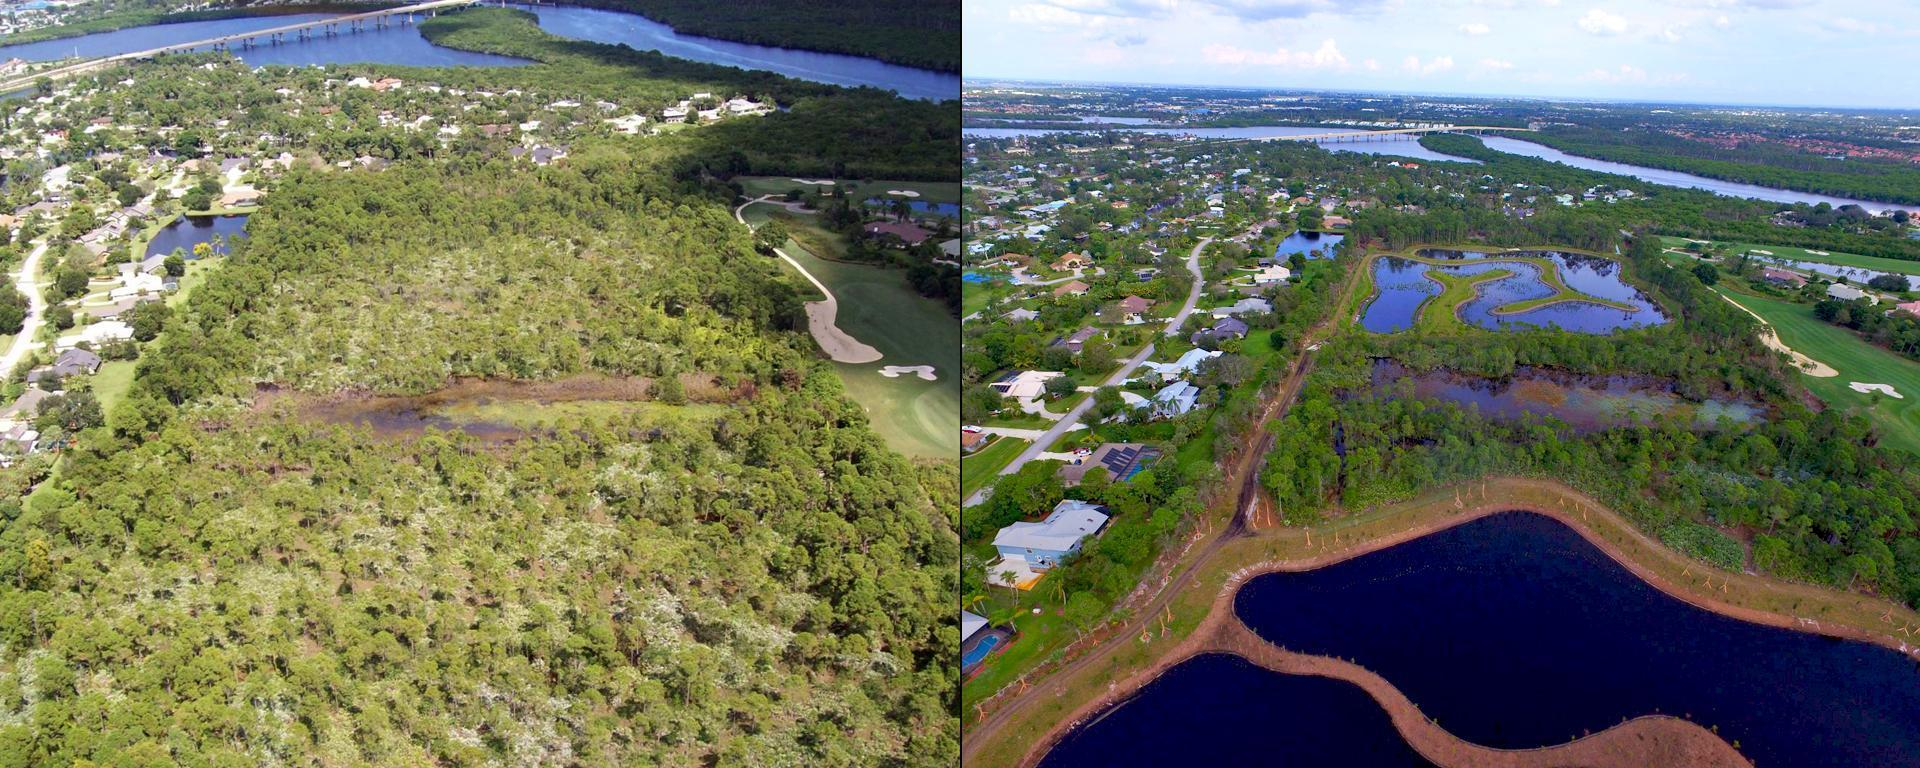 An image of the St. Lucie Shores project before and after.